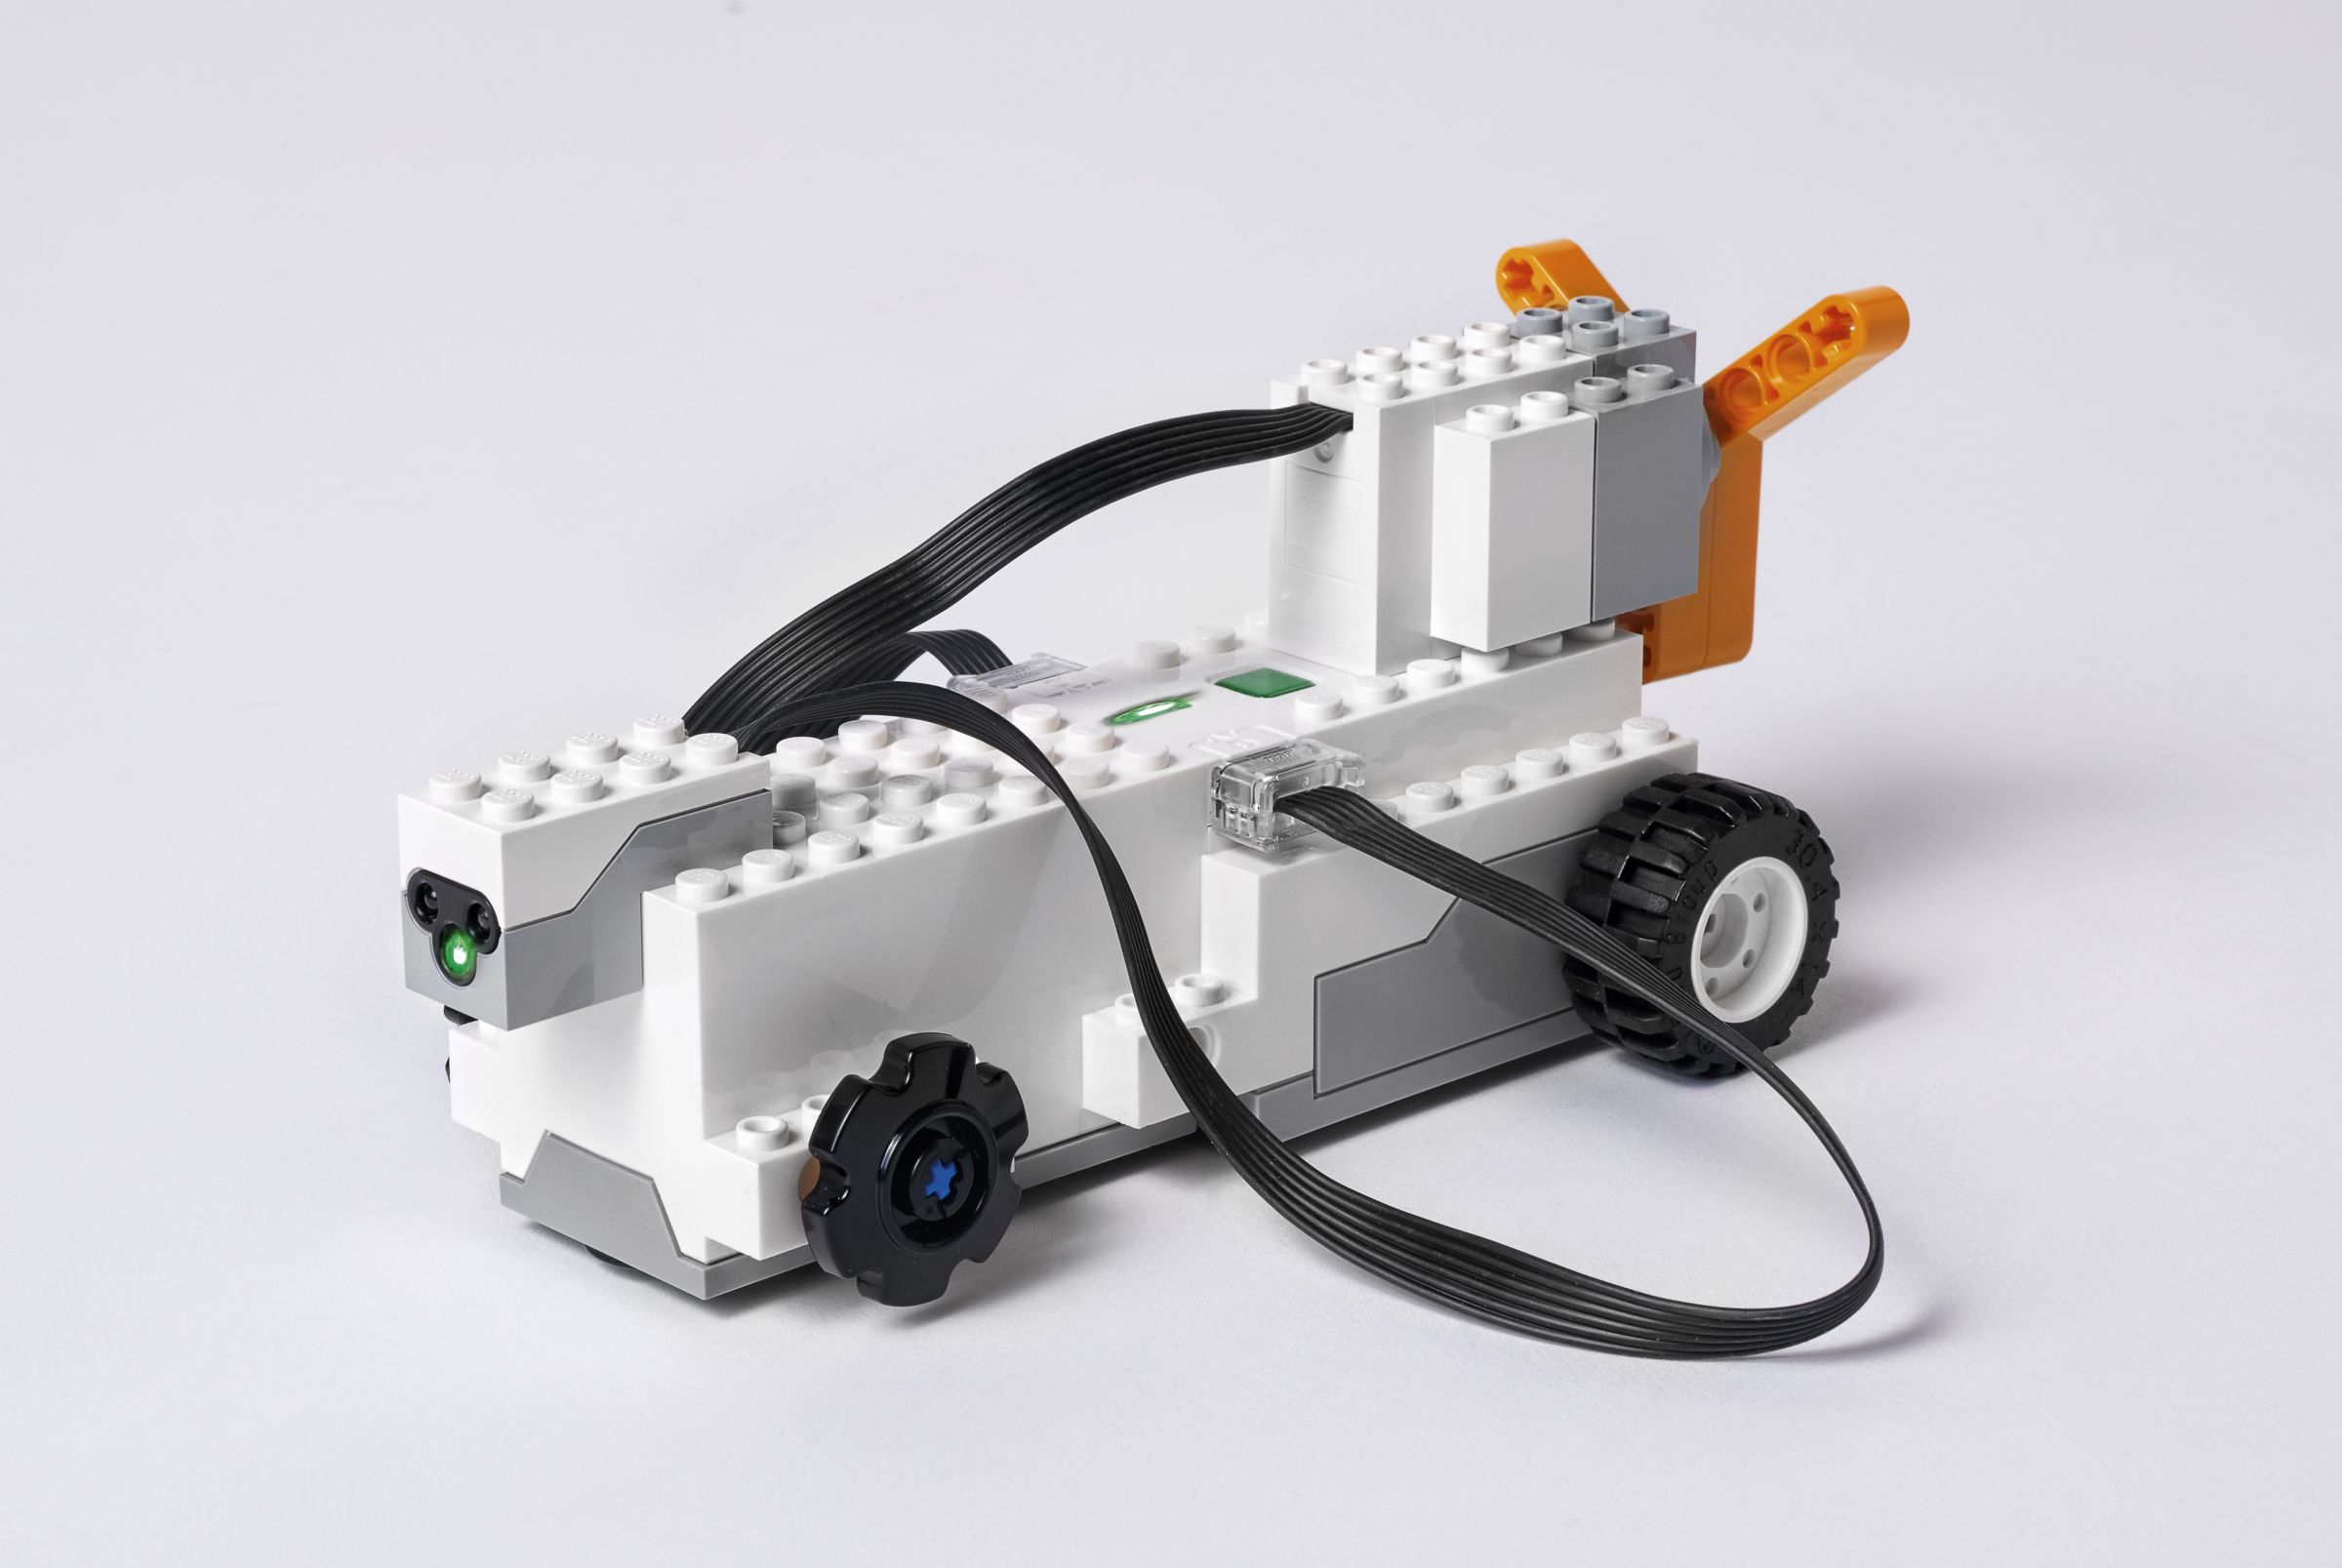 LEGO BOOST 17101 Creative Toolbox LEGO_BOOST_WHITE_START_V001.jpg